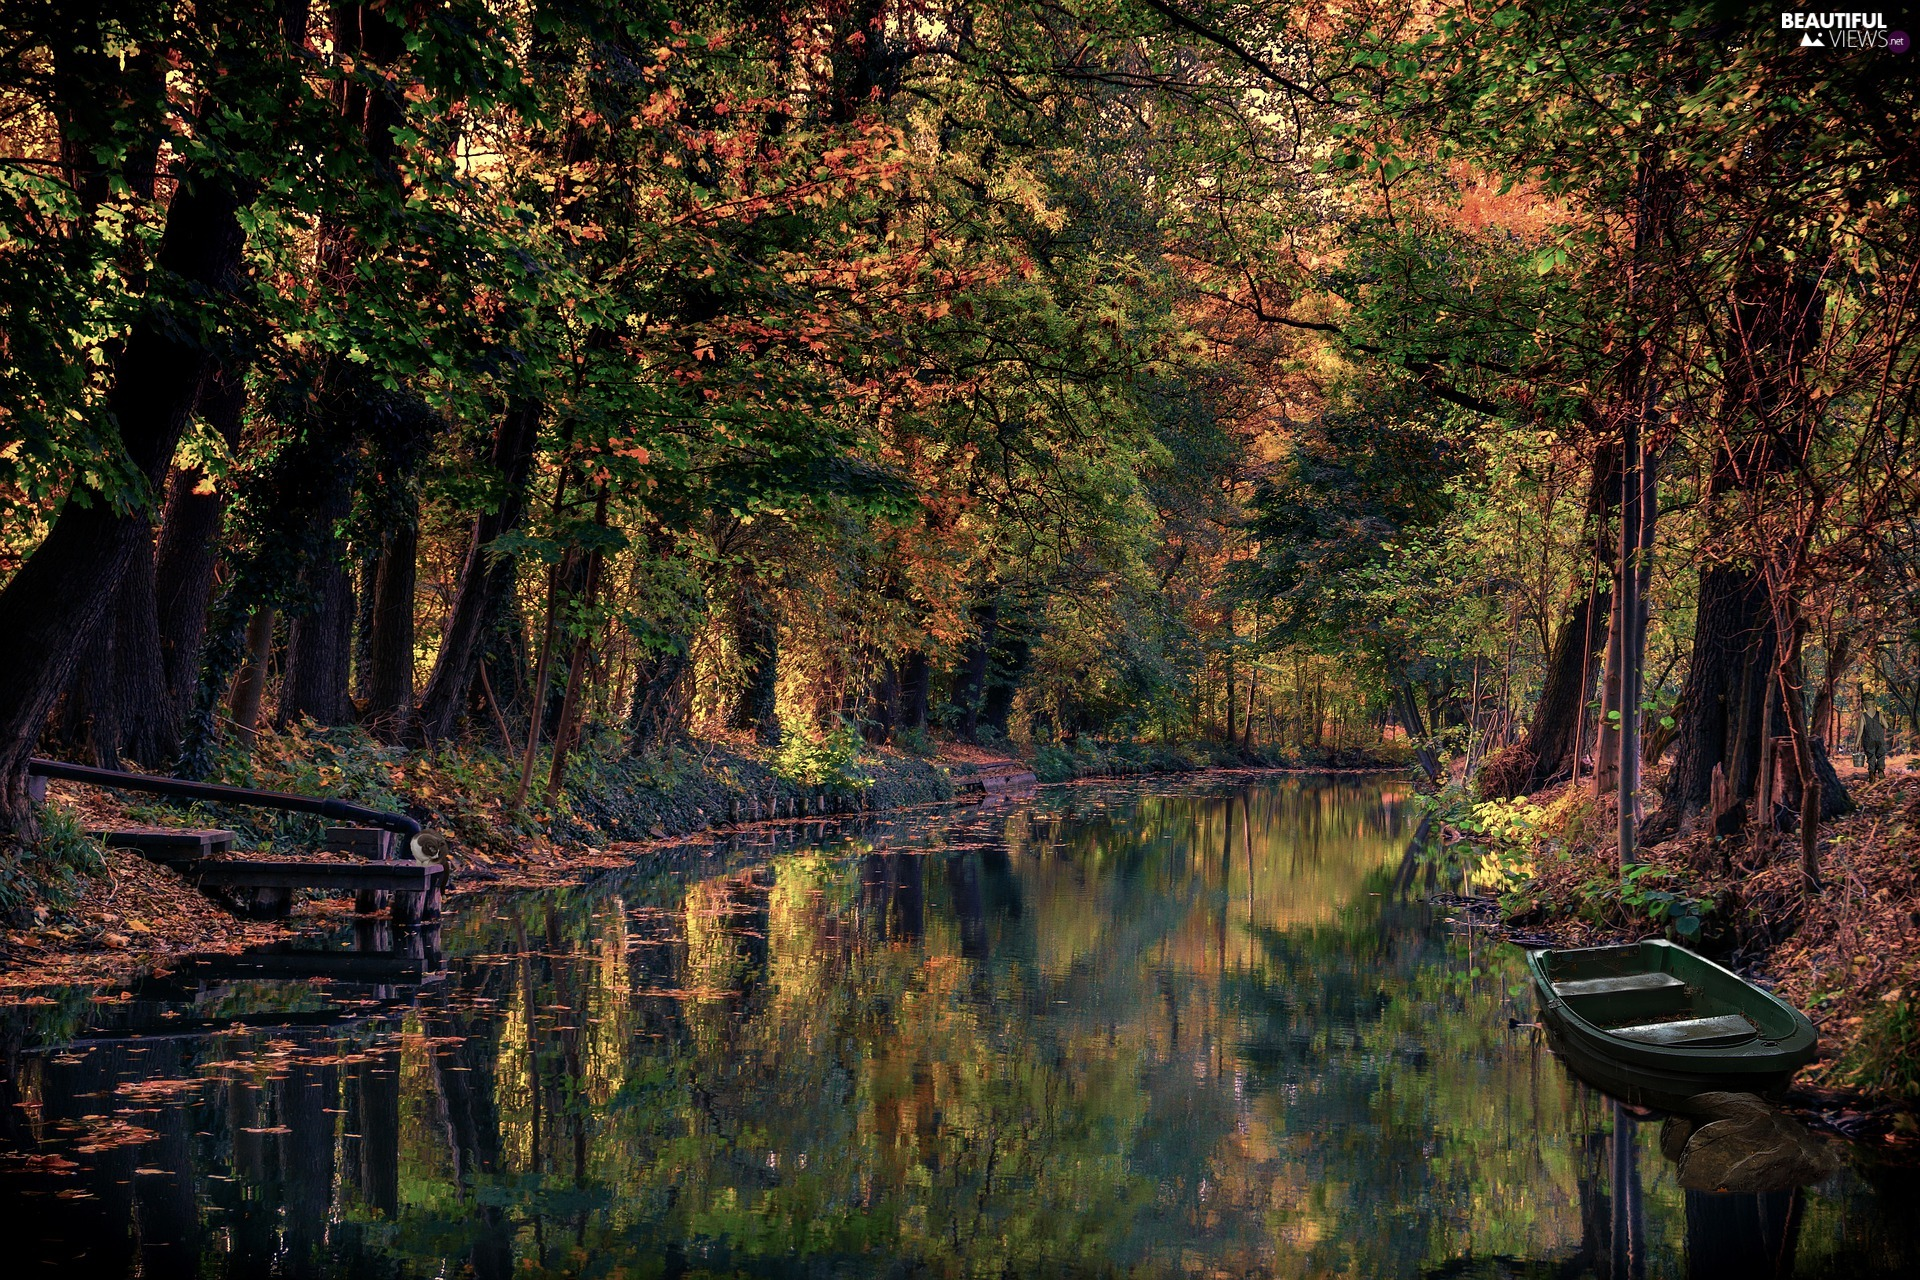 viewes, River, Boat, trees, canal, forest, autumn